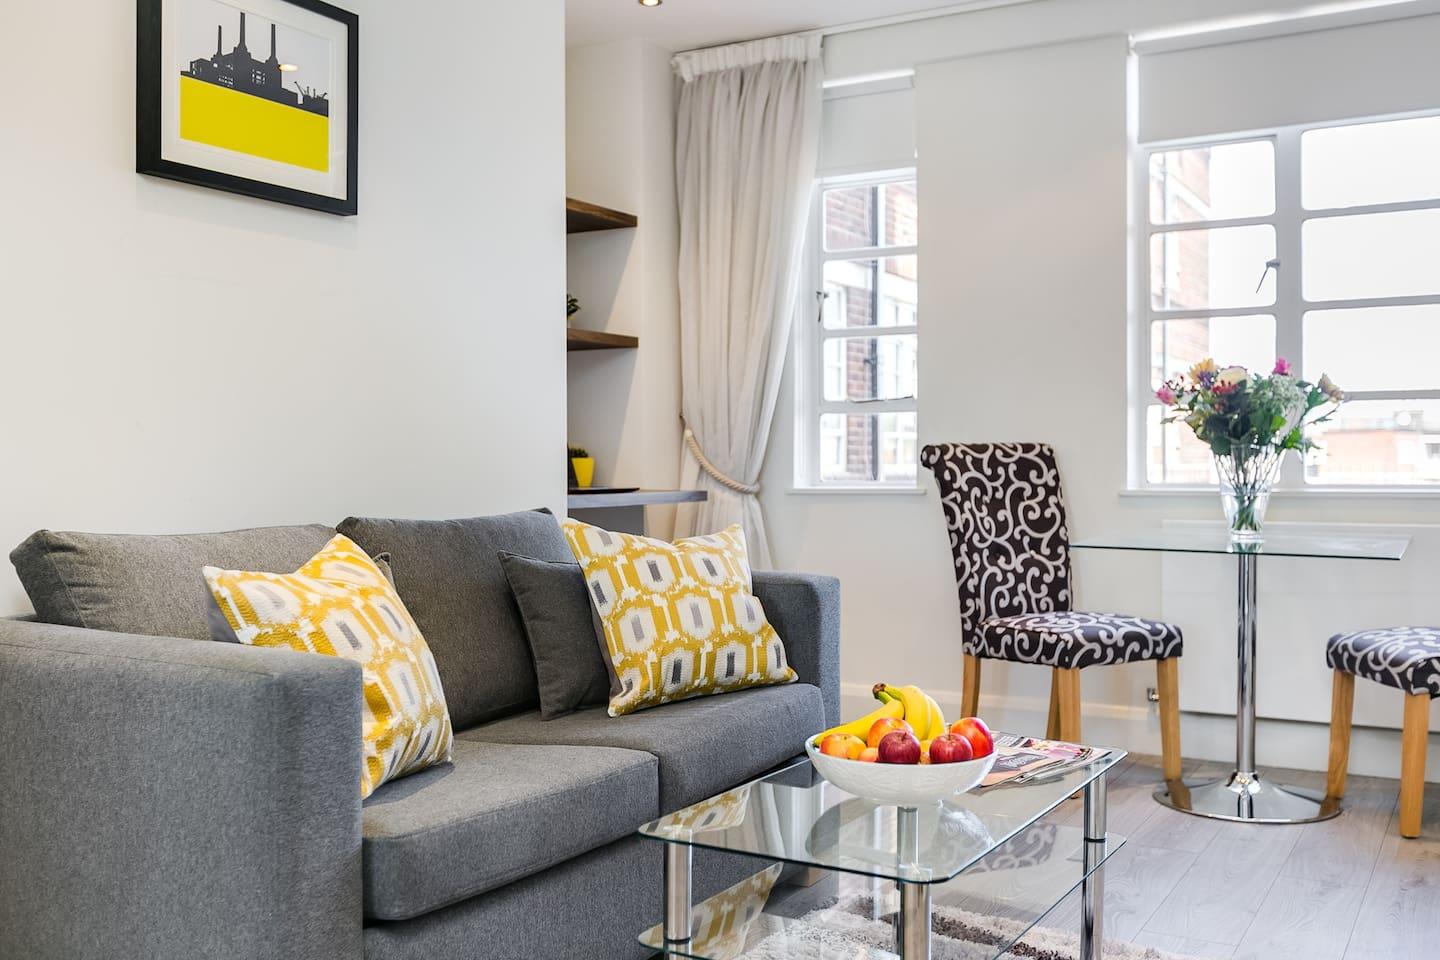 Refurbished 5th floor one bedroom apartment in London's famous Nell Gwynn House. Relax, unwind and enjoy the views from your very own little piece of Chelsea